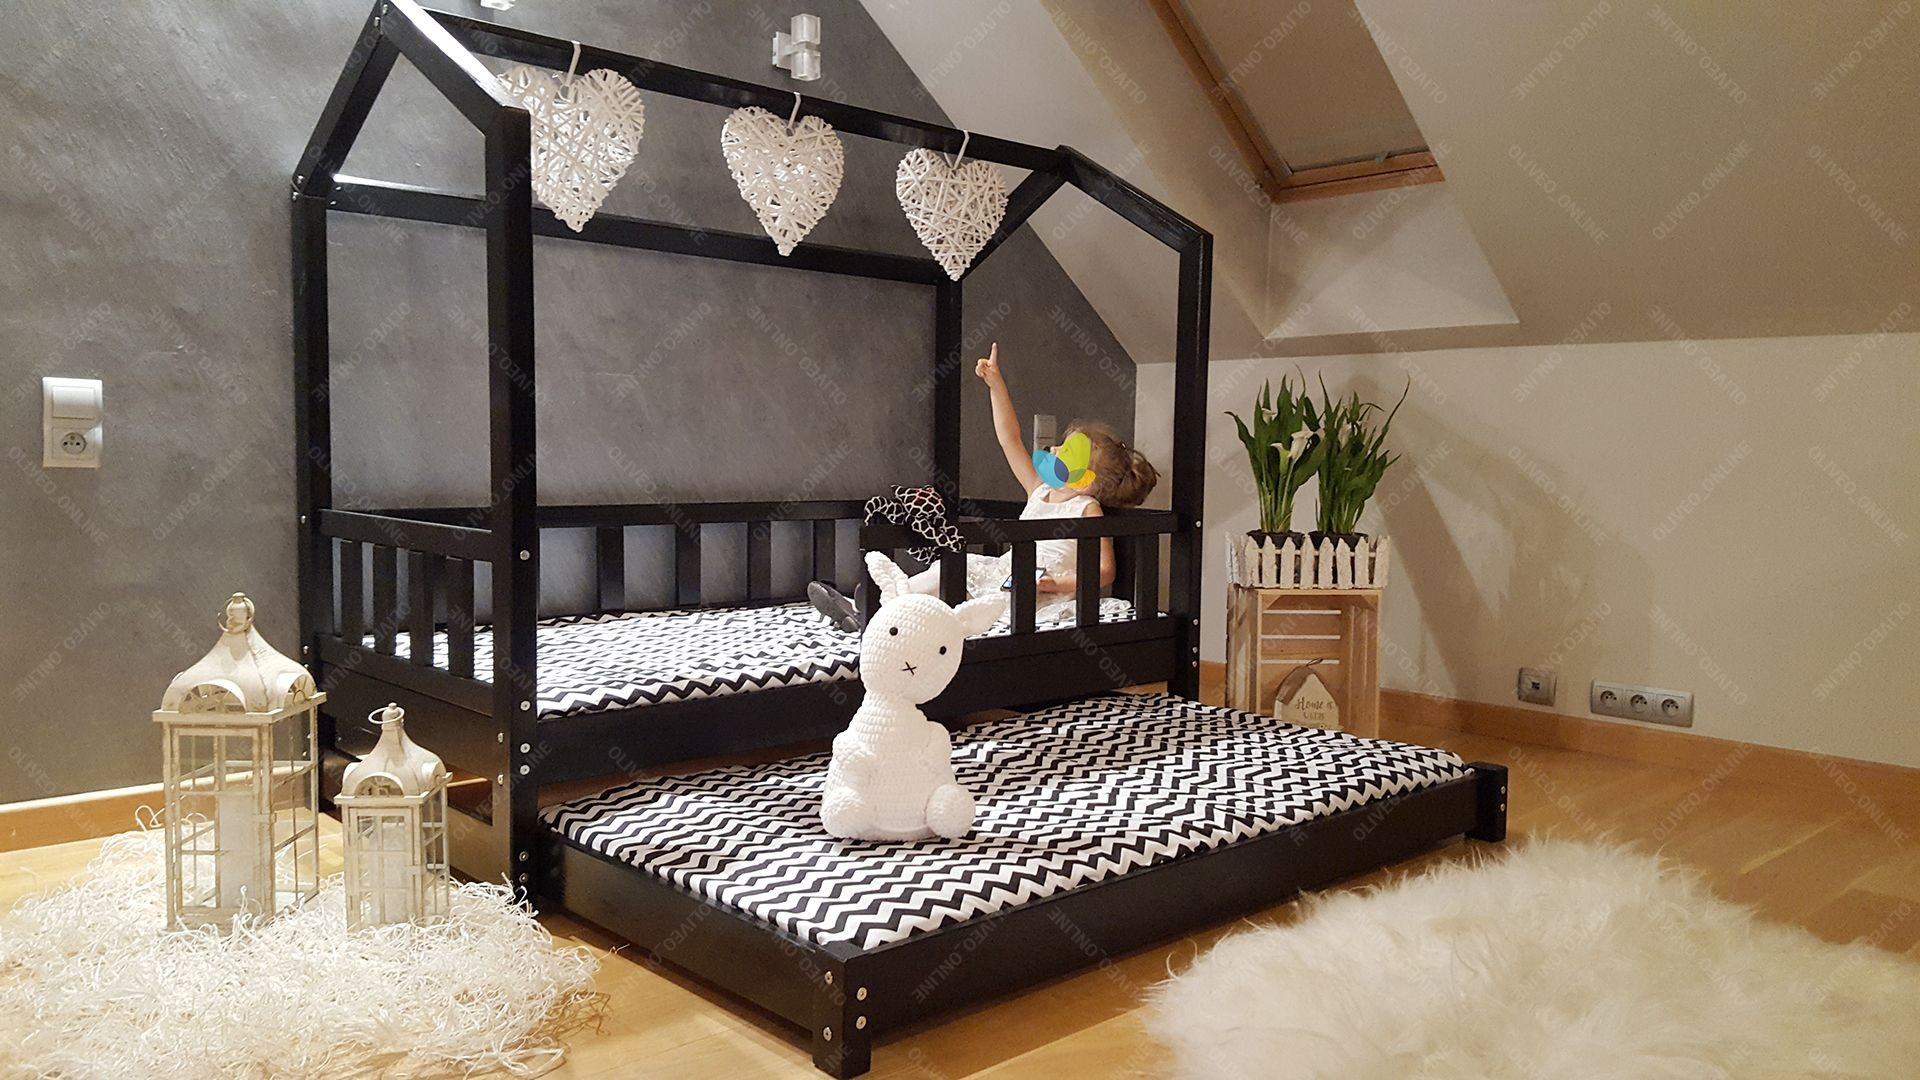 House Bed Bella With Barrier And Second Bed 90 X 200cm House Bed